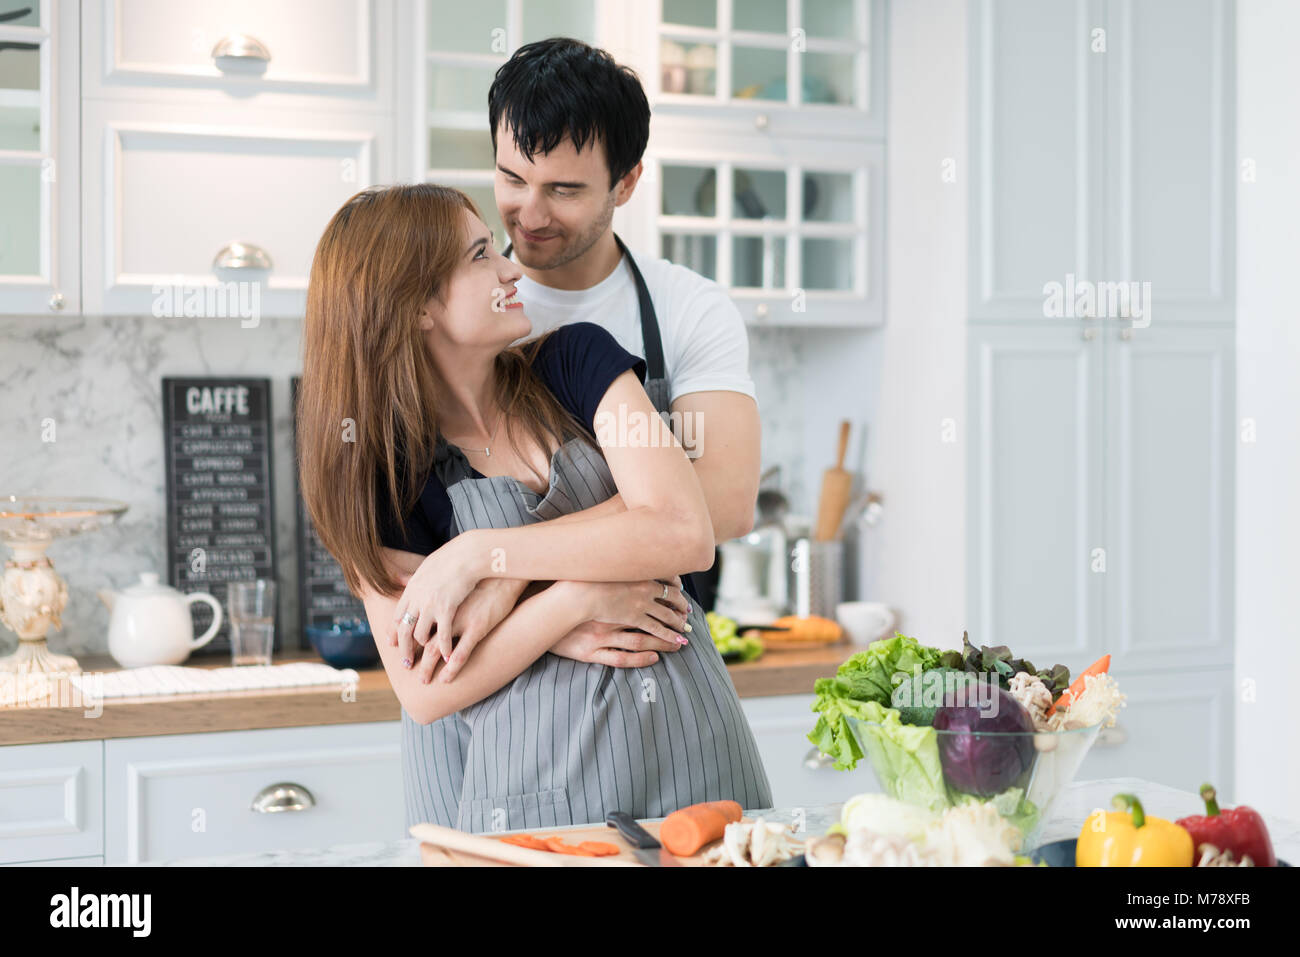 Lovely young couple preparing healthy meal in the modern kitchen. Man hugging woman romantic in morning at kitchen. Stock Photo